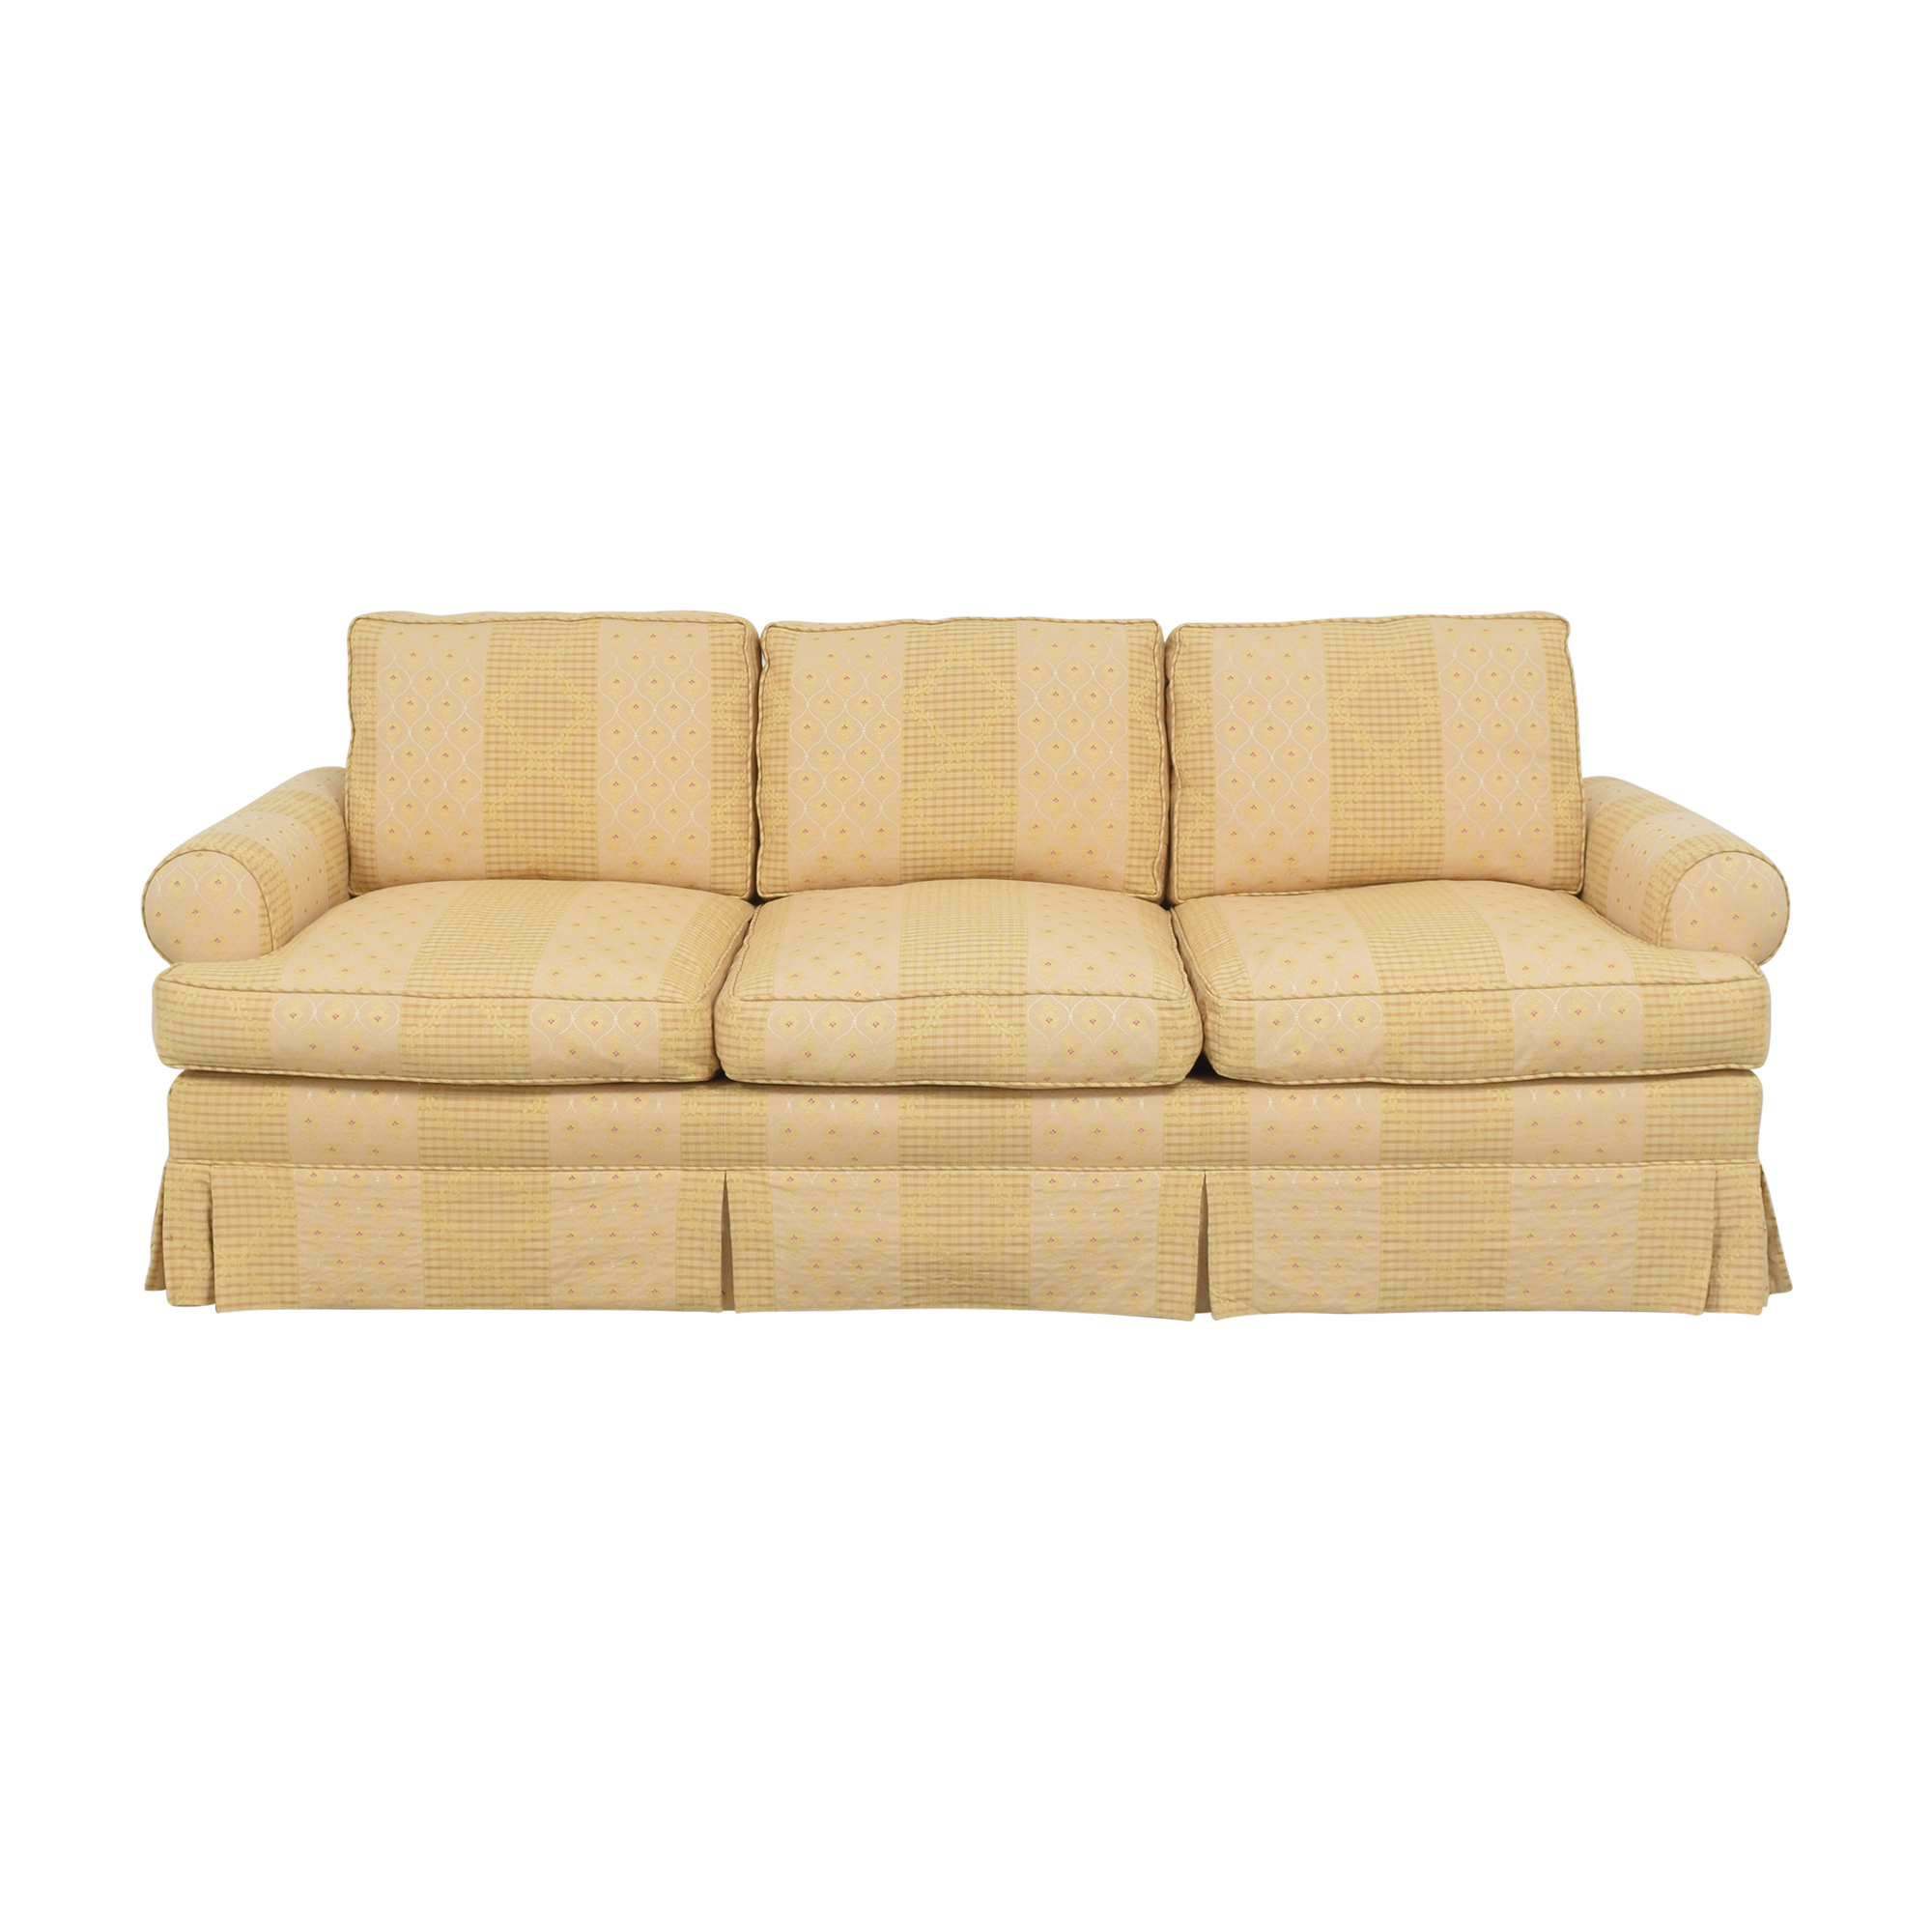 Pottery Barn Pottery Barn Skirted Roll Arm Sofa for sale